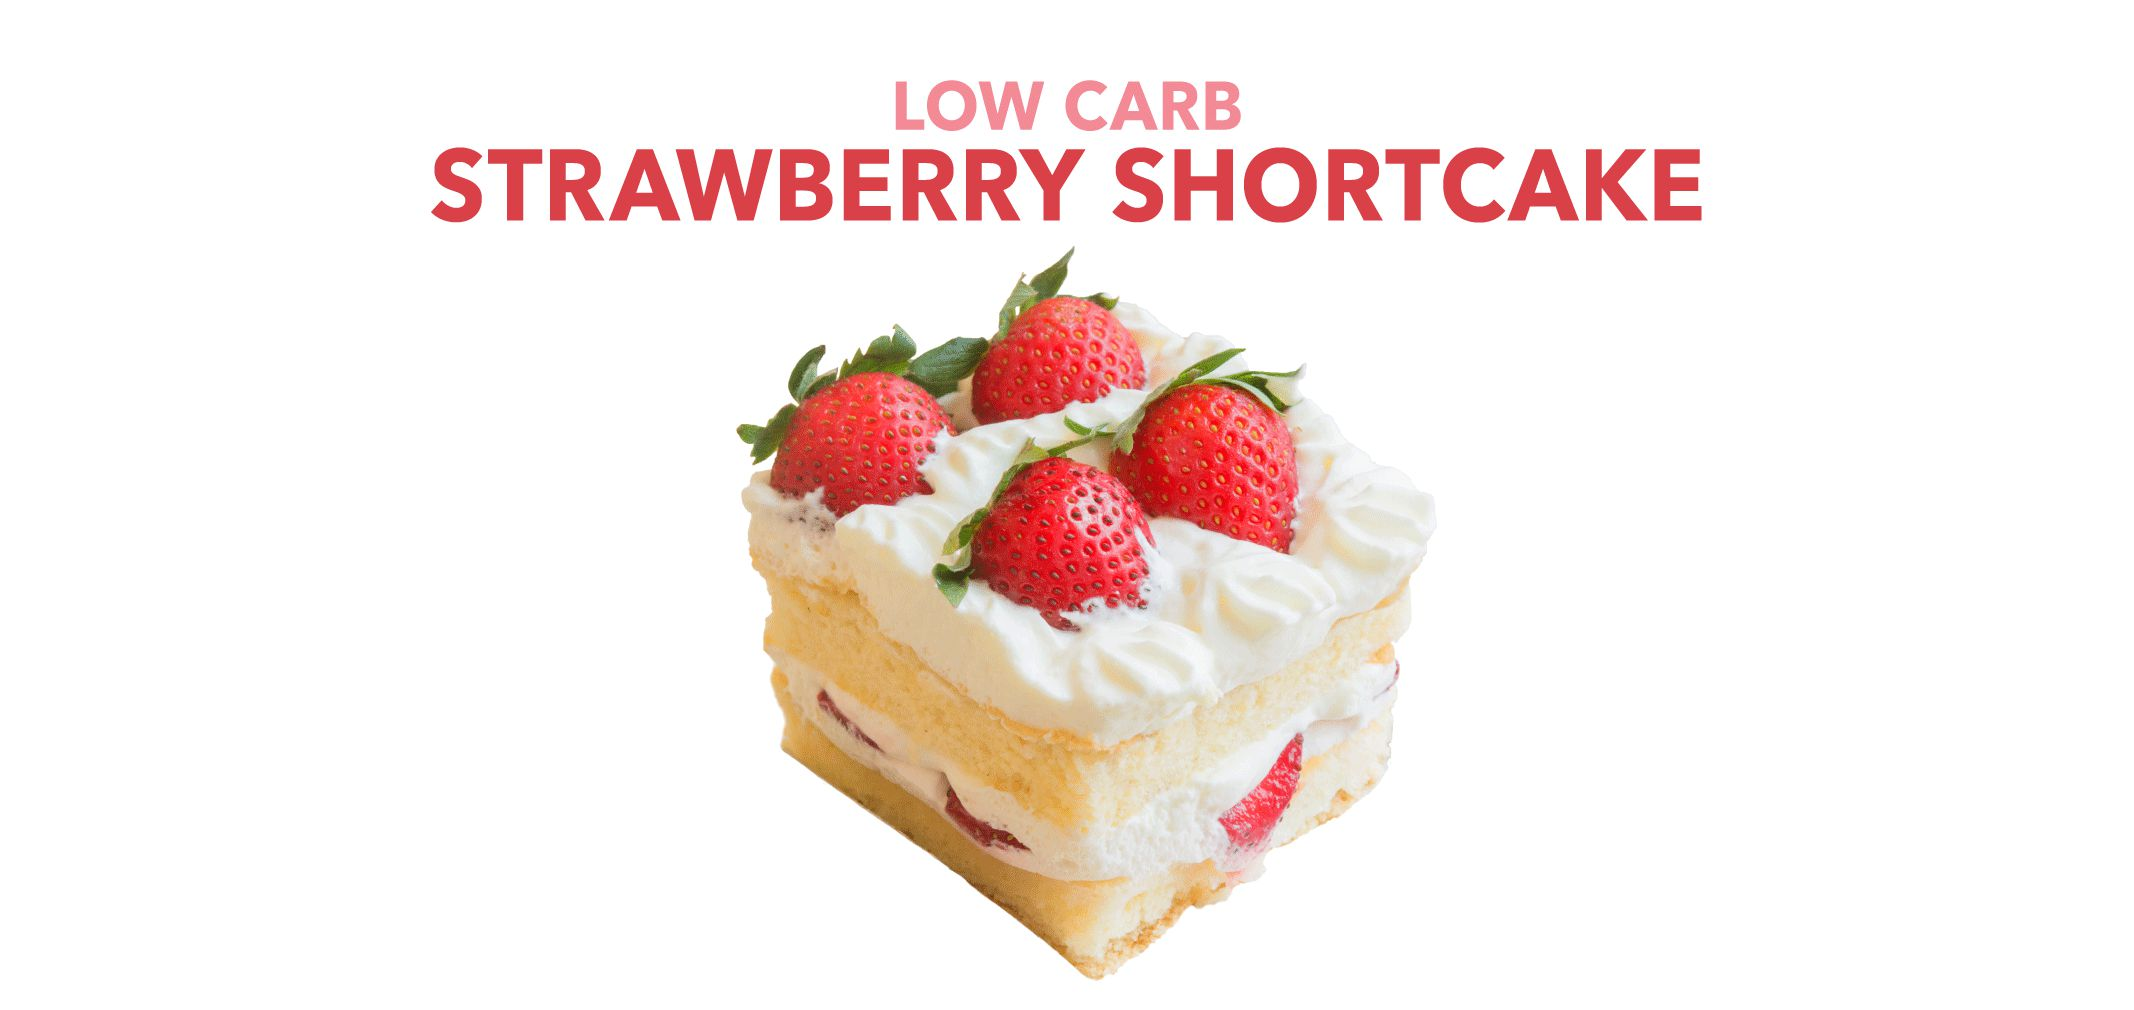 Low Carb Strawberry Shortcake label image